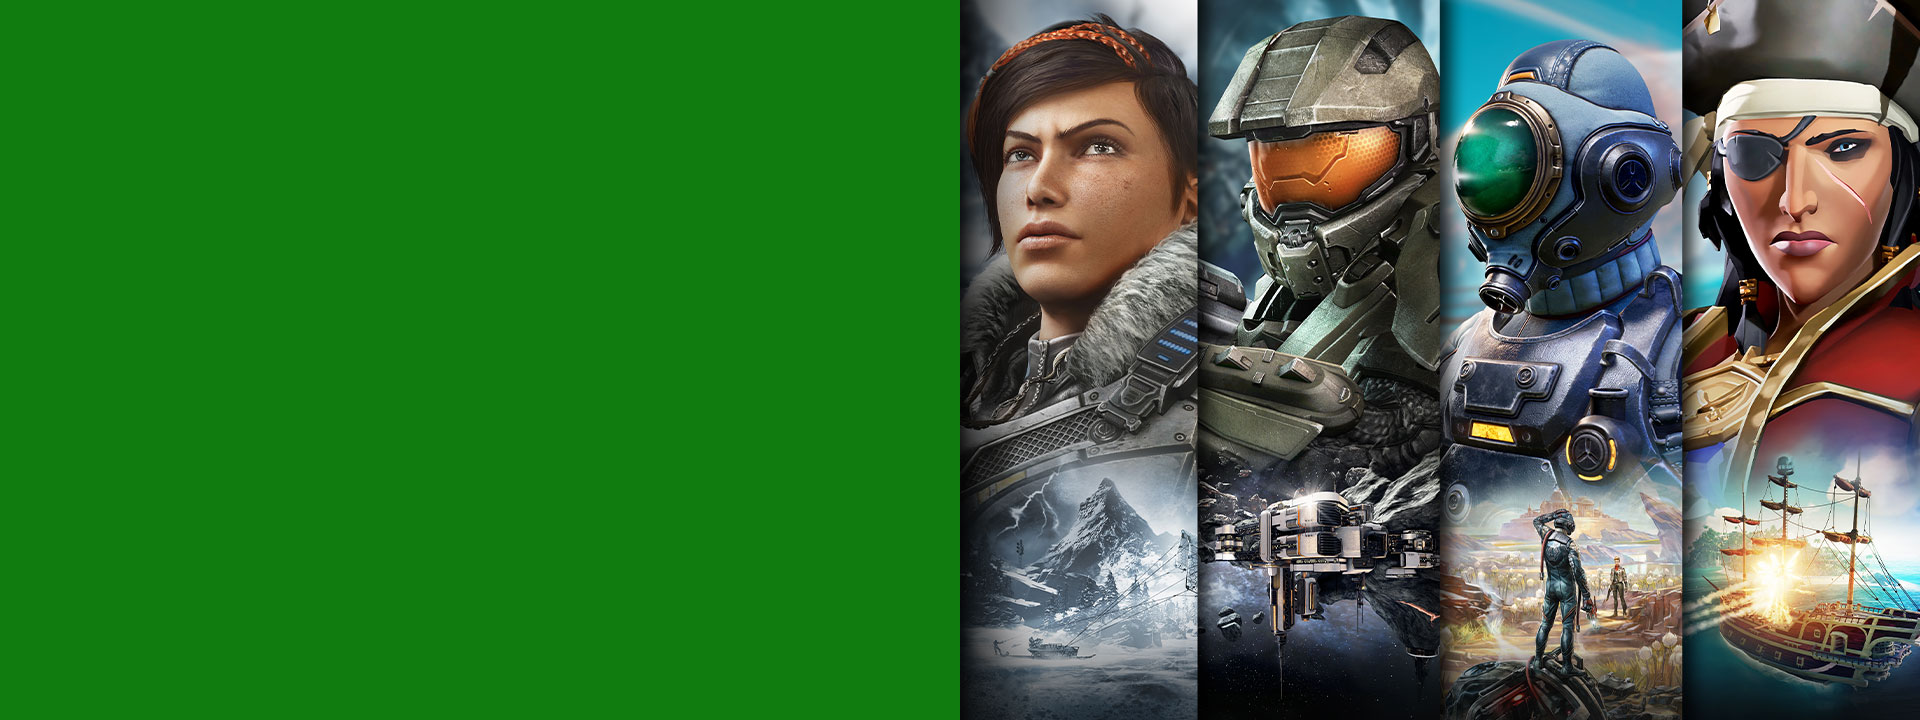 Gears 5, Halo, The Outer Worlds ve Sea of Thieves'ten Xbox Game Pass karakterleri.